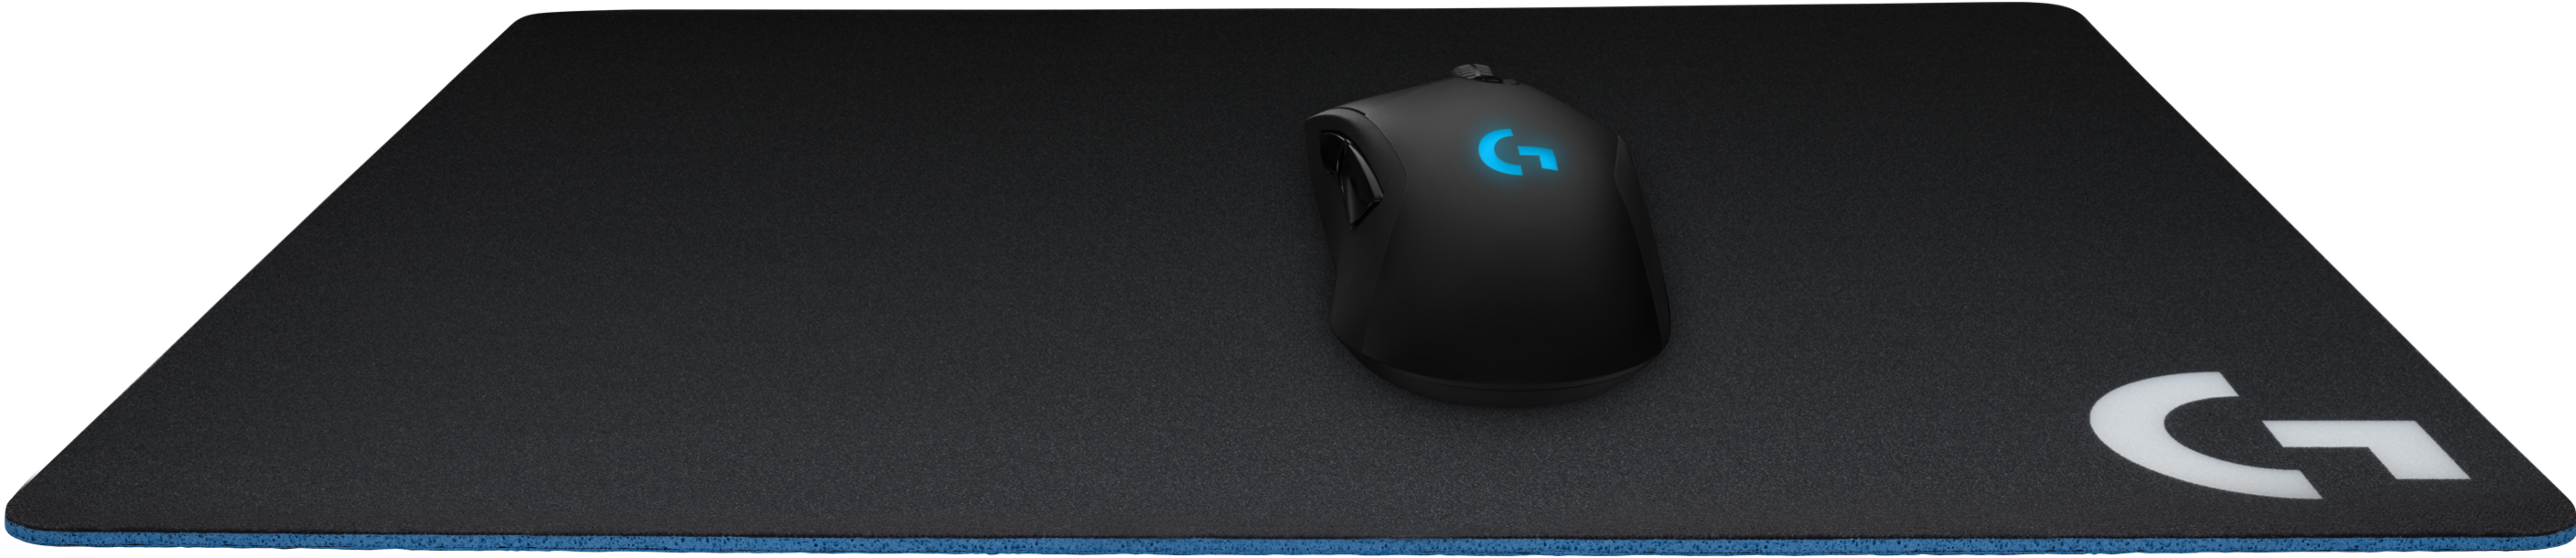 Mouse pad png. Logitech g large cloth